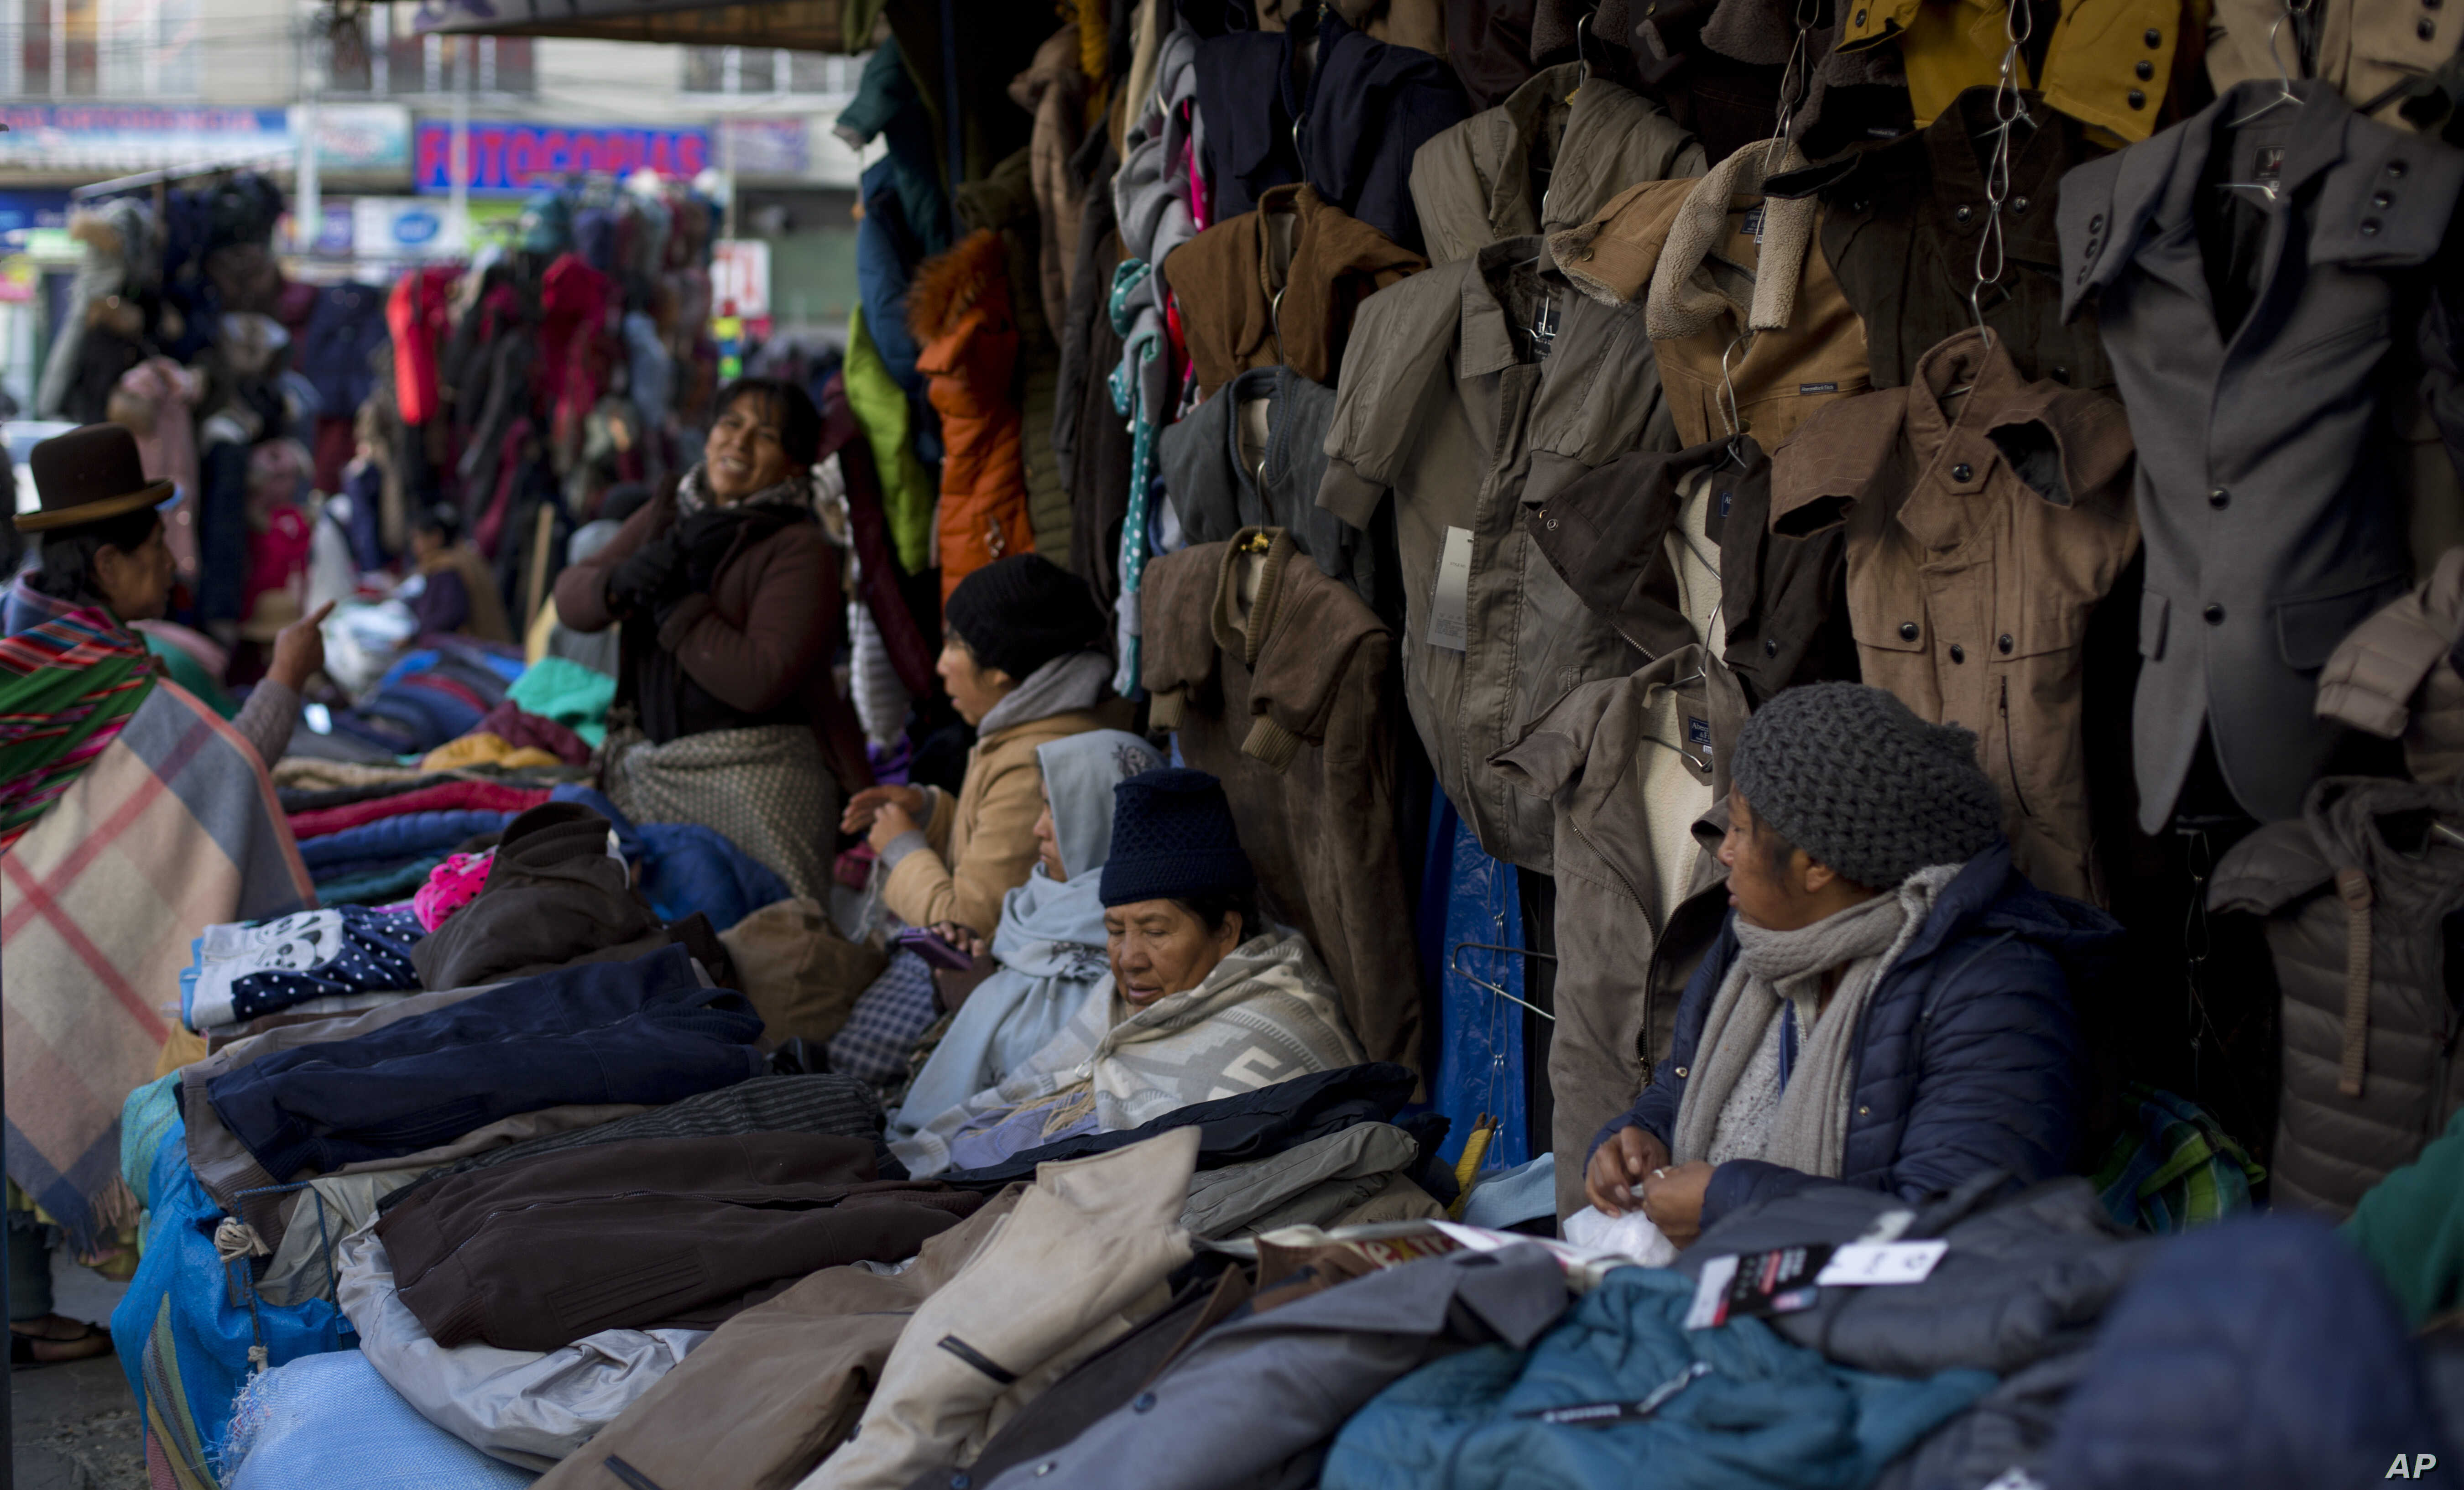 In this June 4, 2019 photo, women sell coats in downtown La Paz, Bolivia. The number of people who joined the informal sector has swelled to about 50%, one of the region's highest. Since President Evo Morales took office in 2006, the economy has…